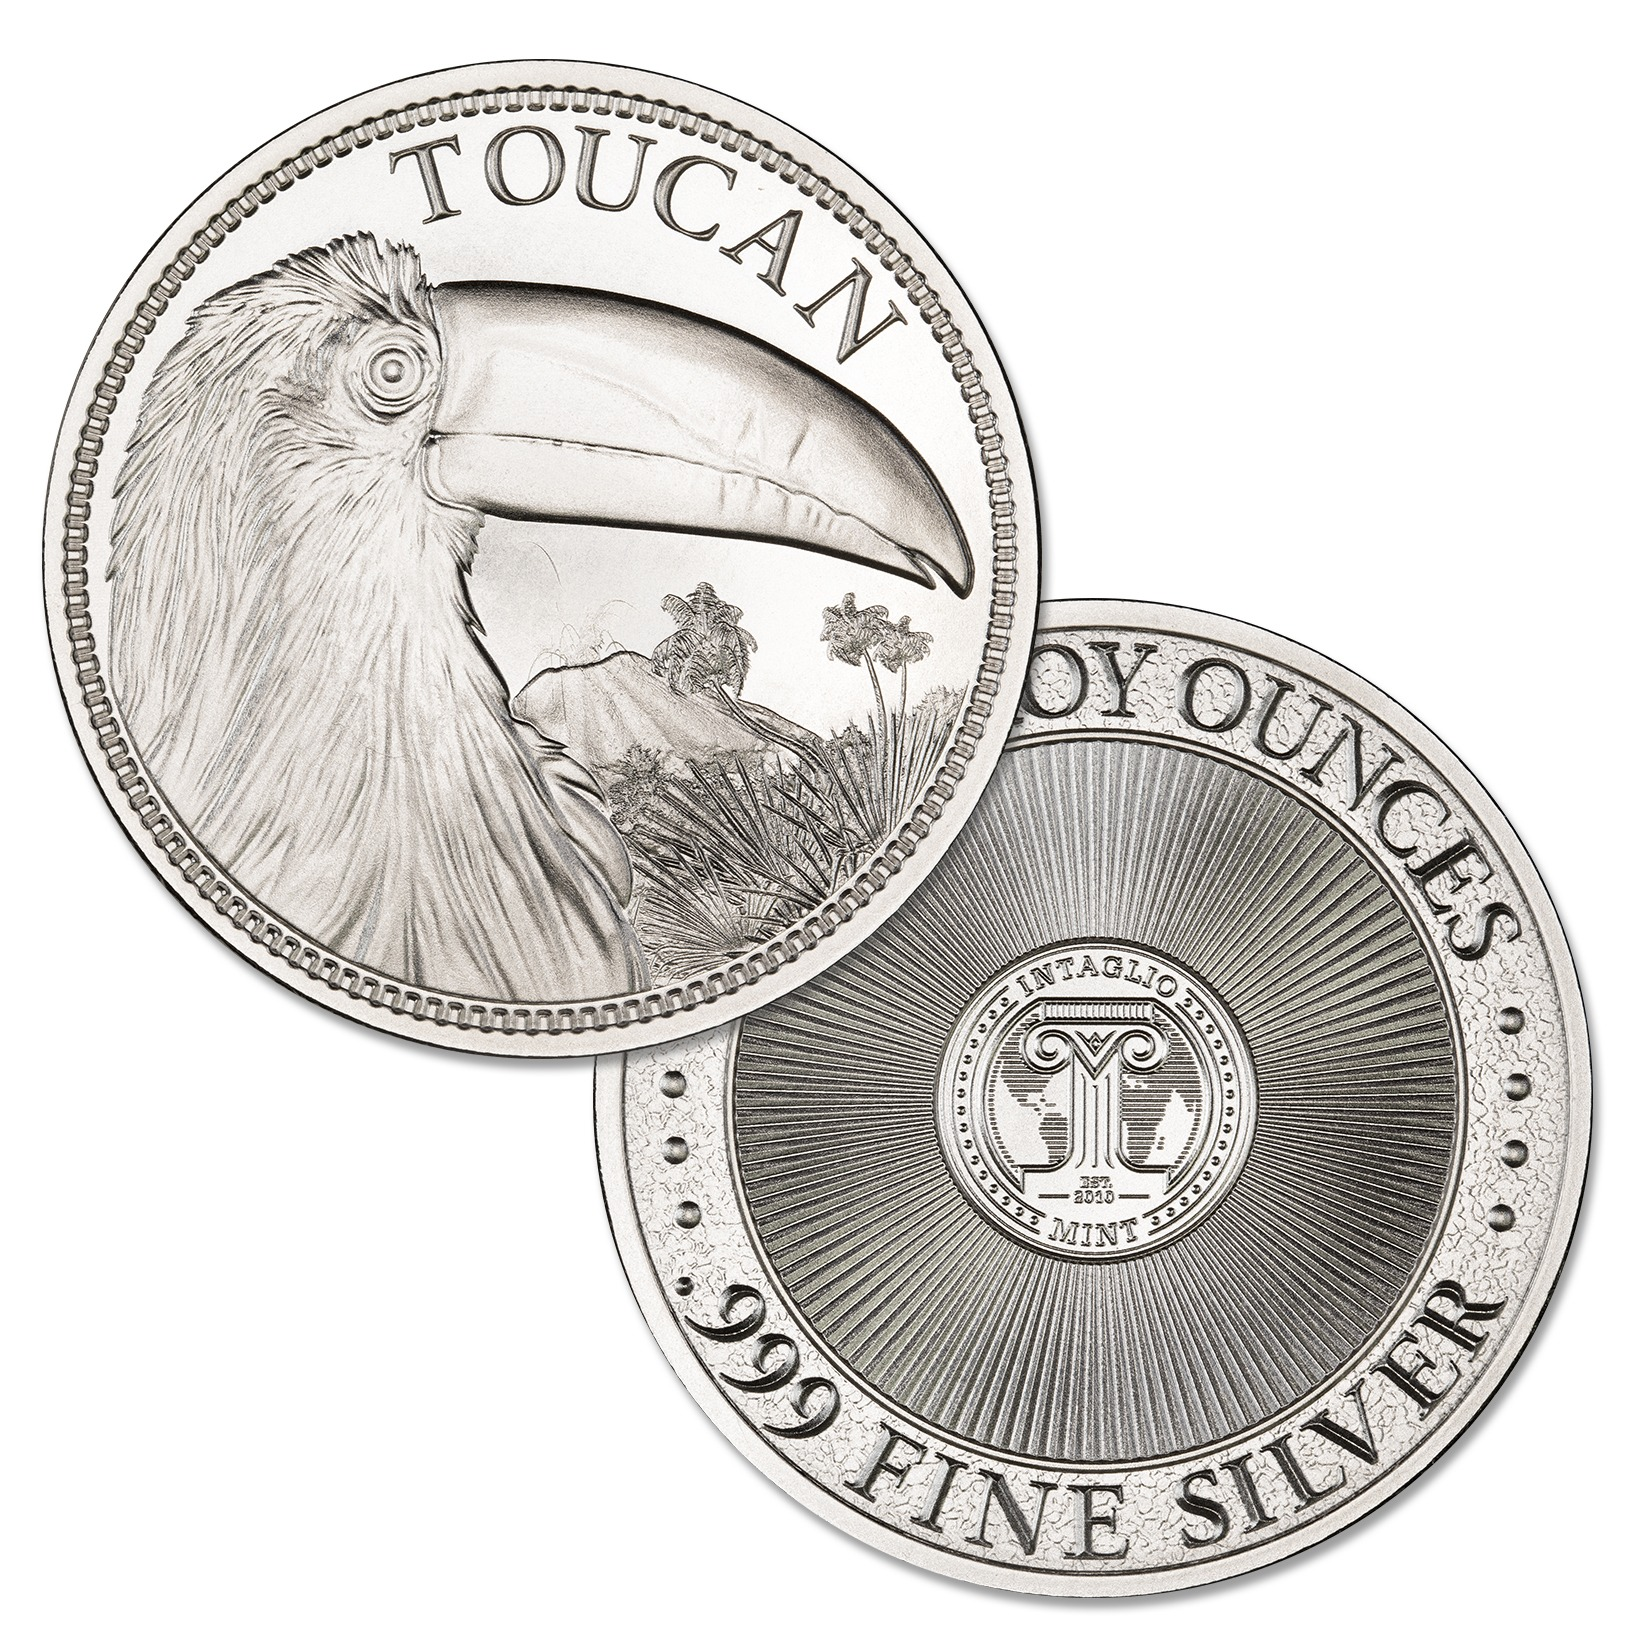 TOUCAN – 2 TROY OUNCE – 50MM